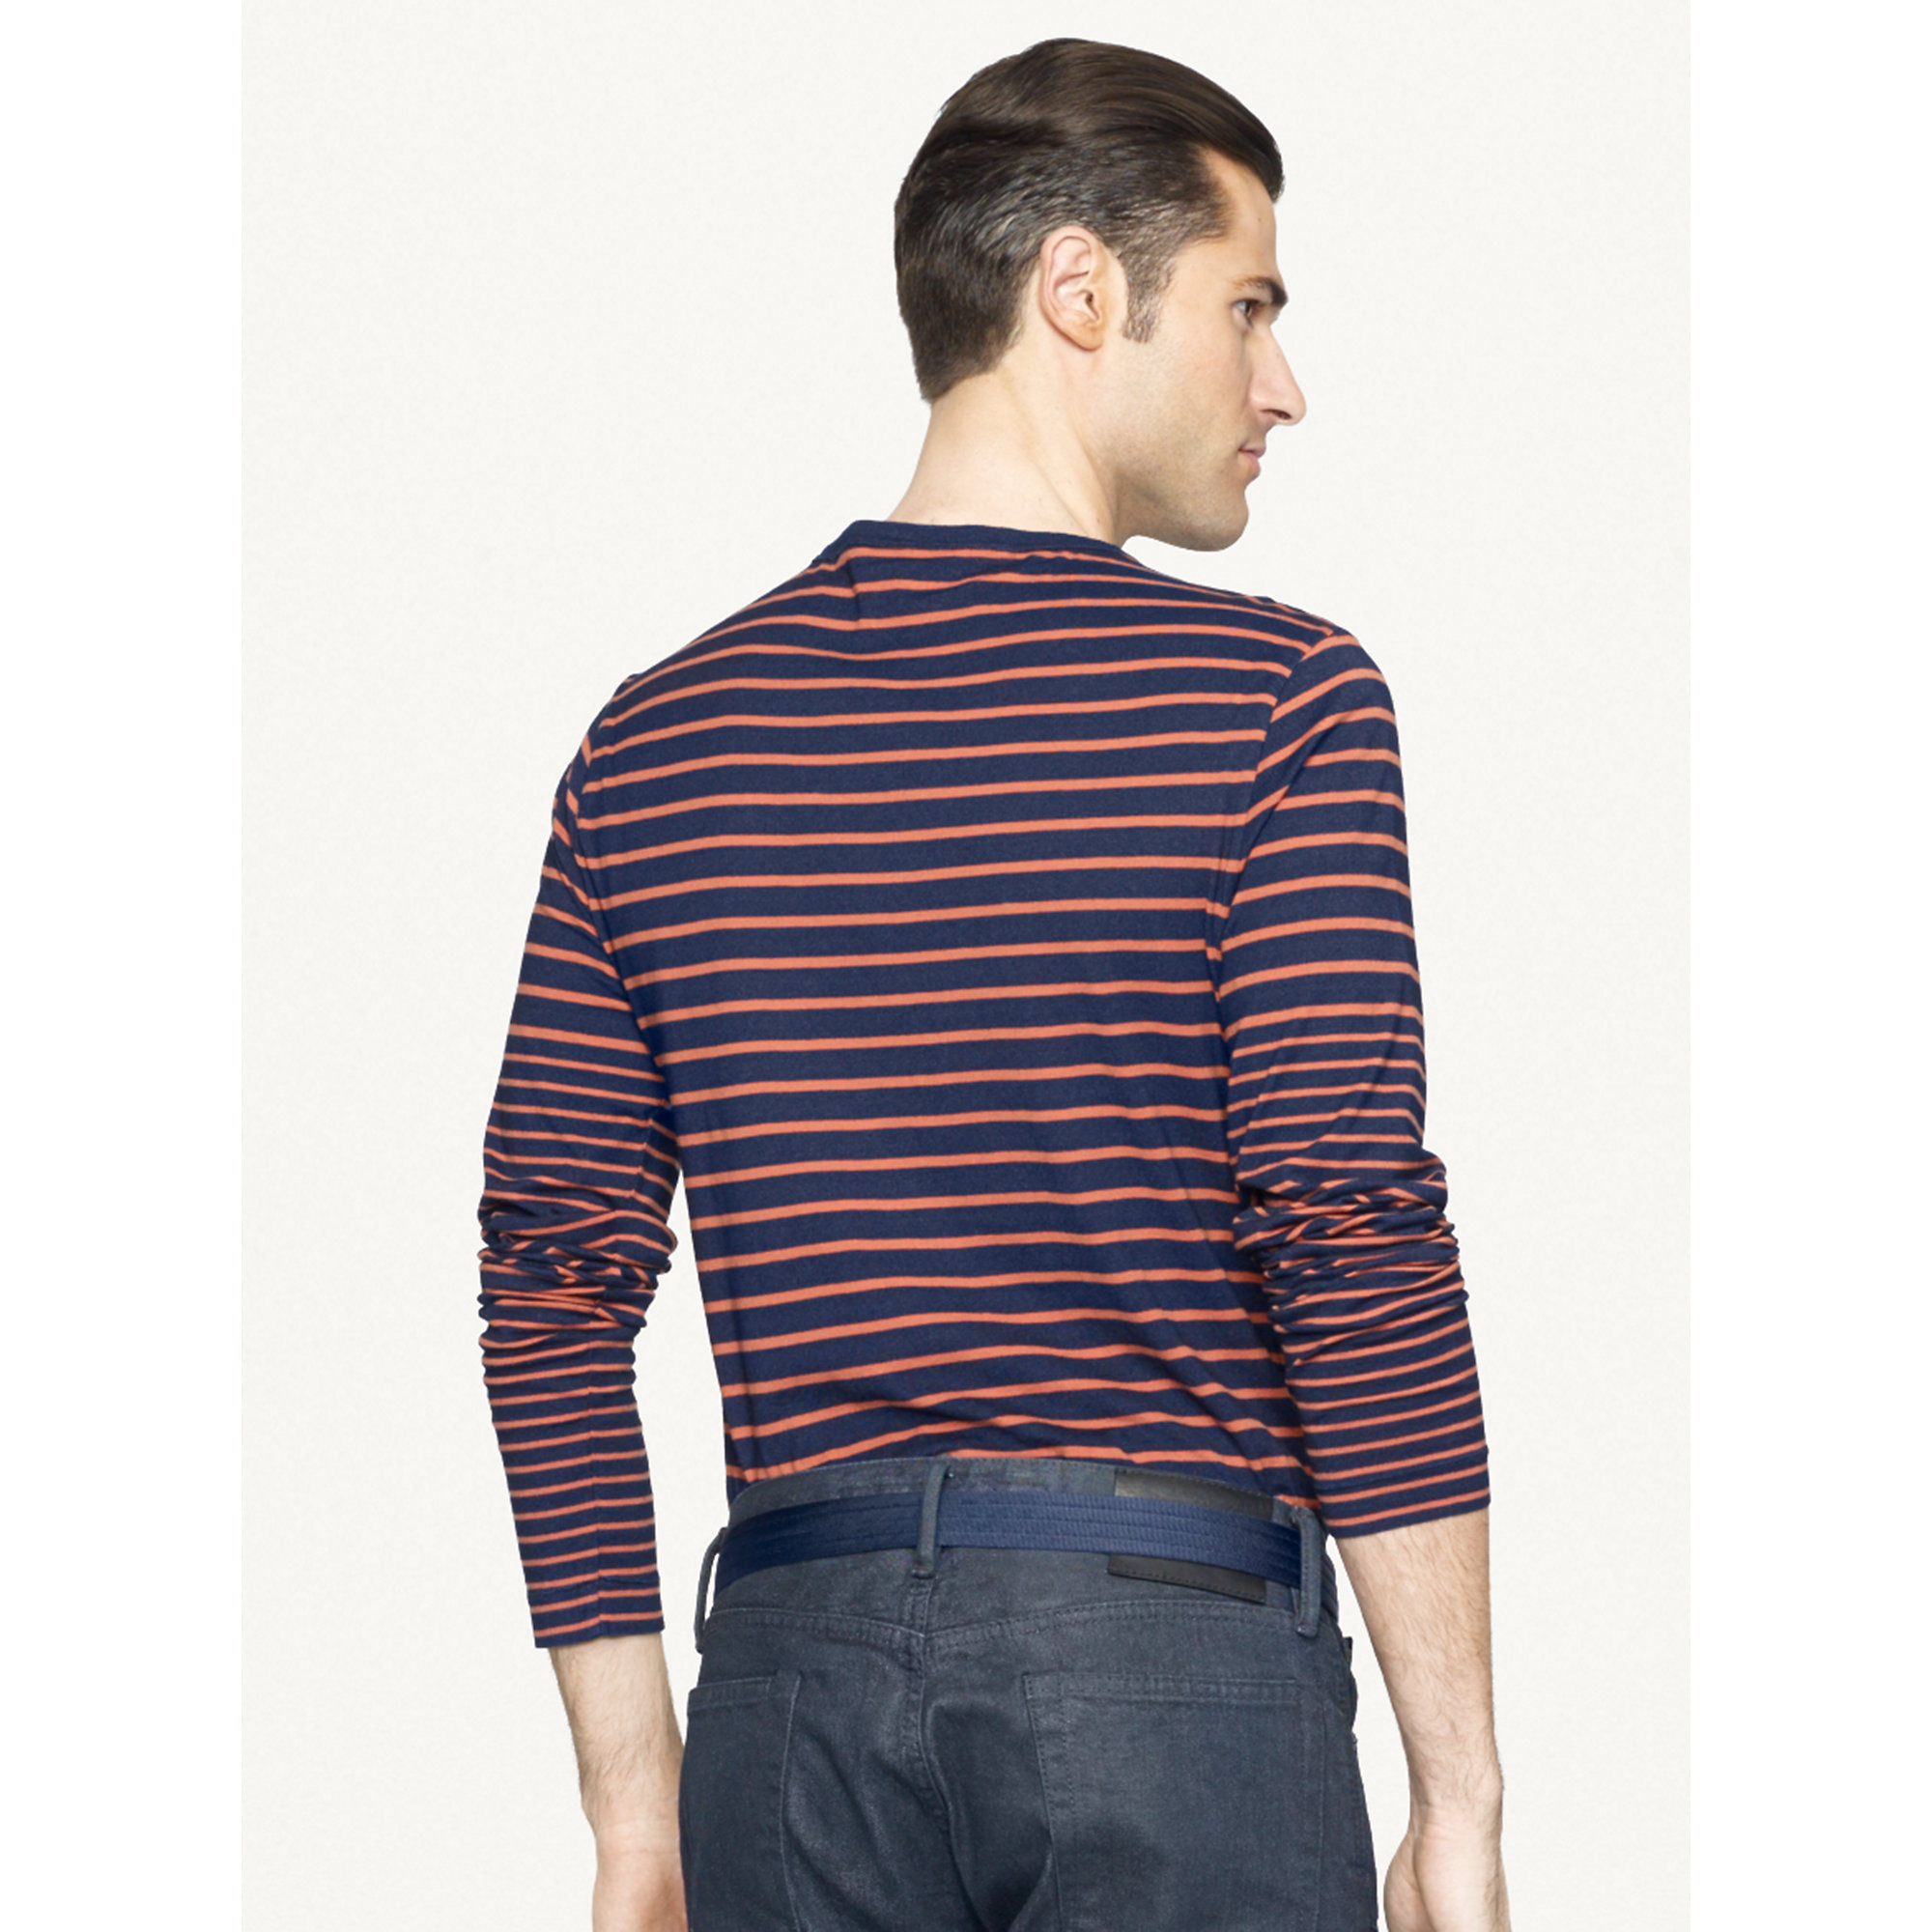 Ralph lauren black label striped long sleeved t shirt in for Black and blue long sleeve shirt